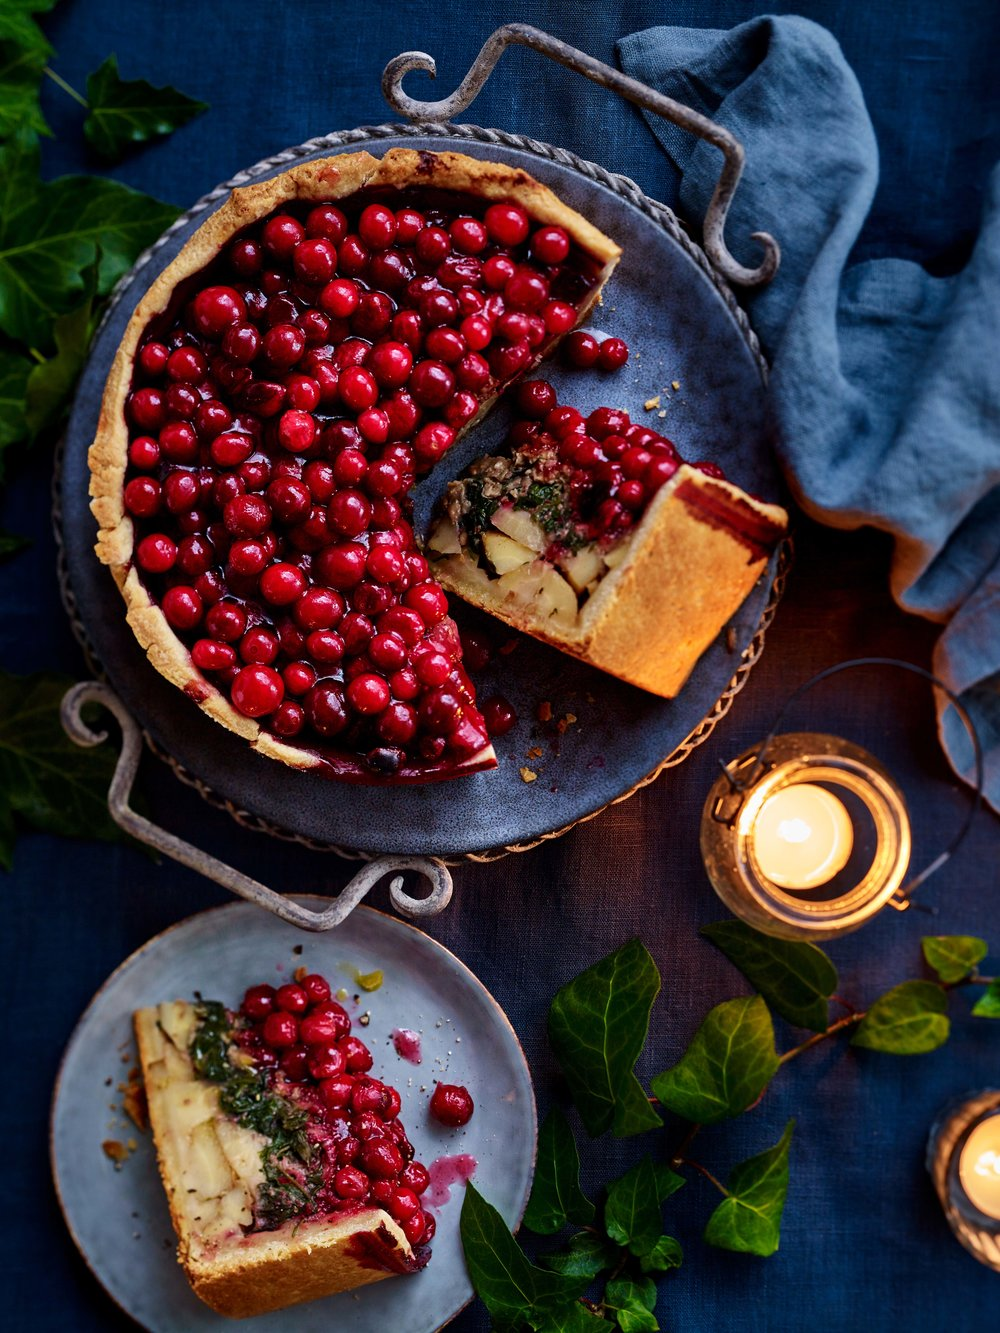 Cranberry-topped vegetable pie, LandScape magazine, Christmas 2017 issue.